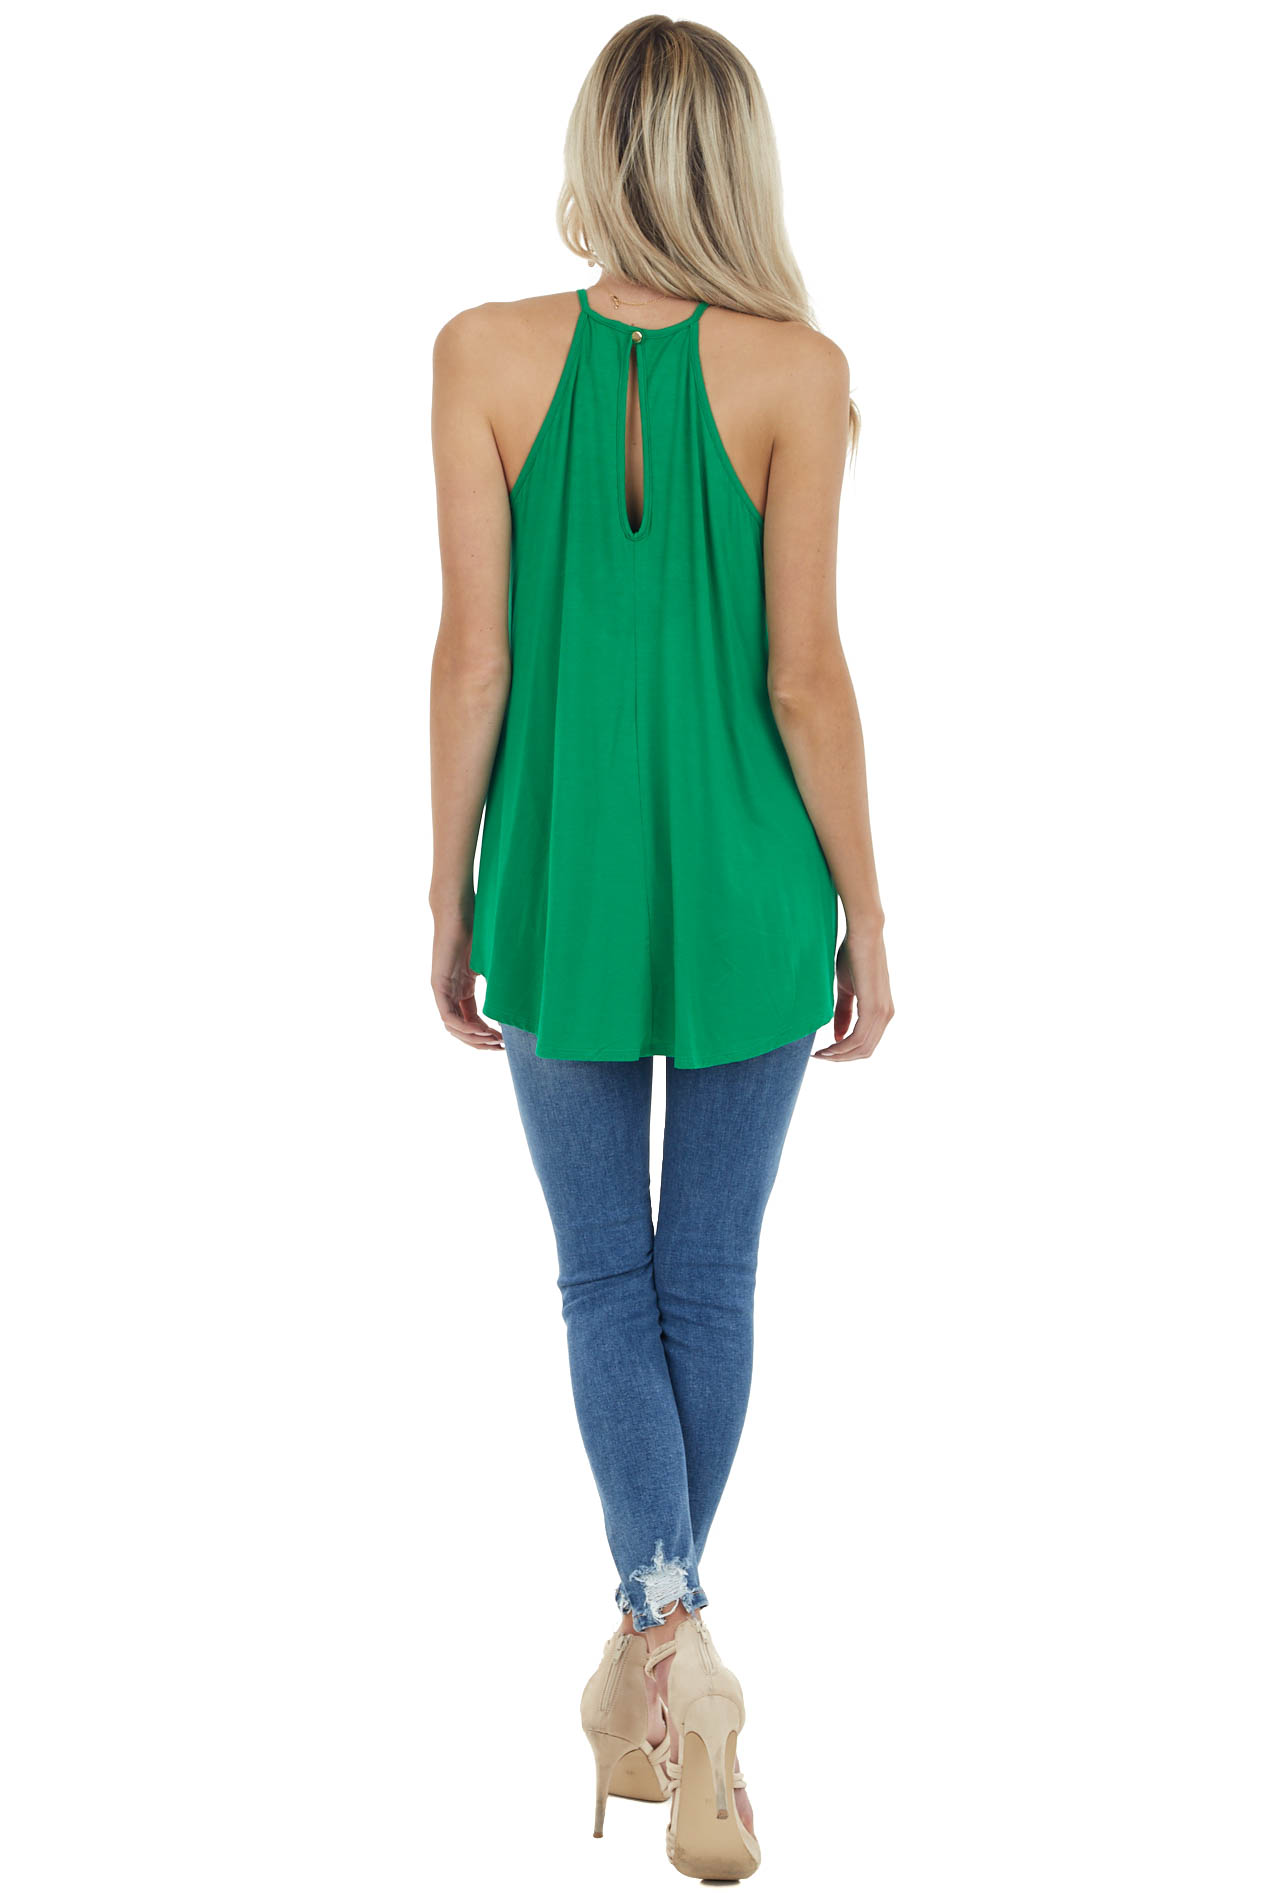 Kelly Green Tank Top with Sheer Lace Chest